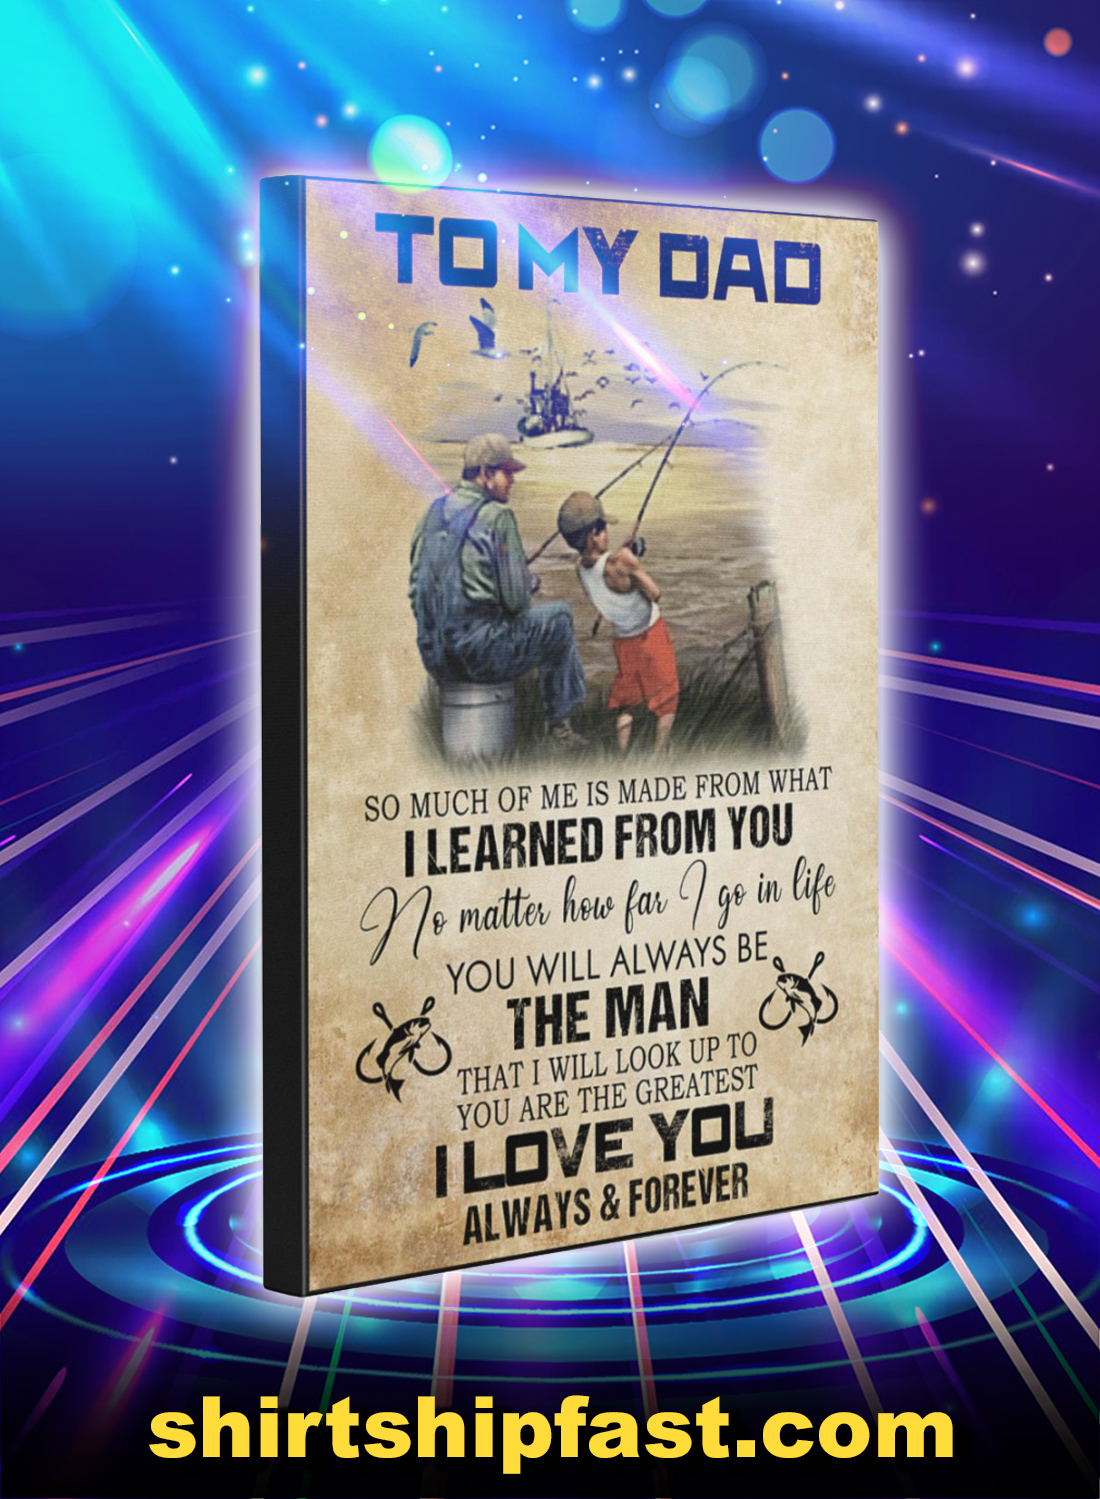 Fishing to my dad i love you always and forever canvas prints